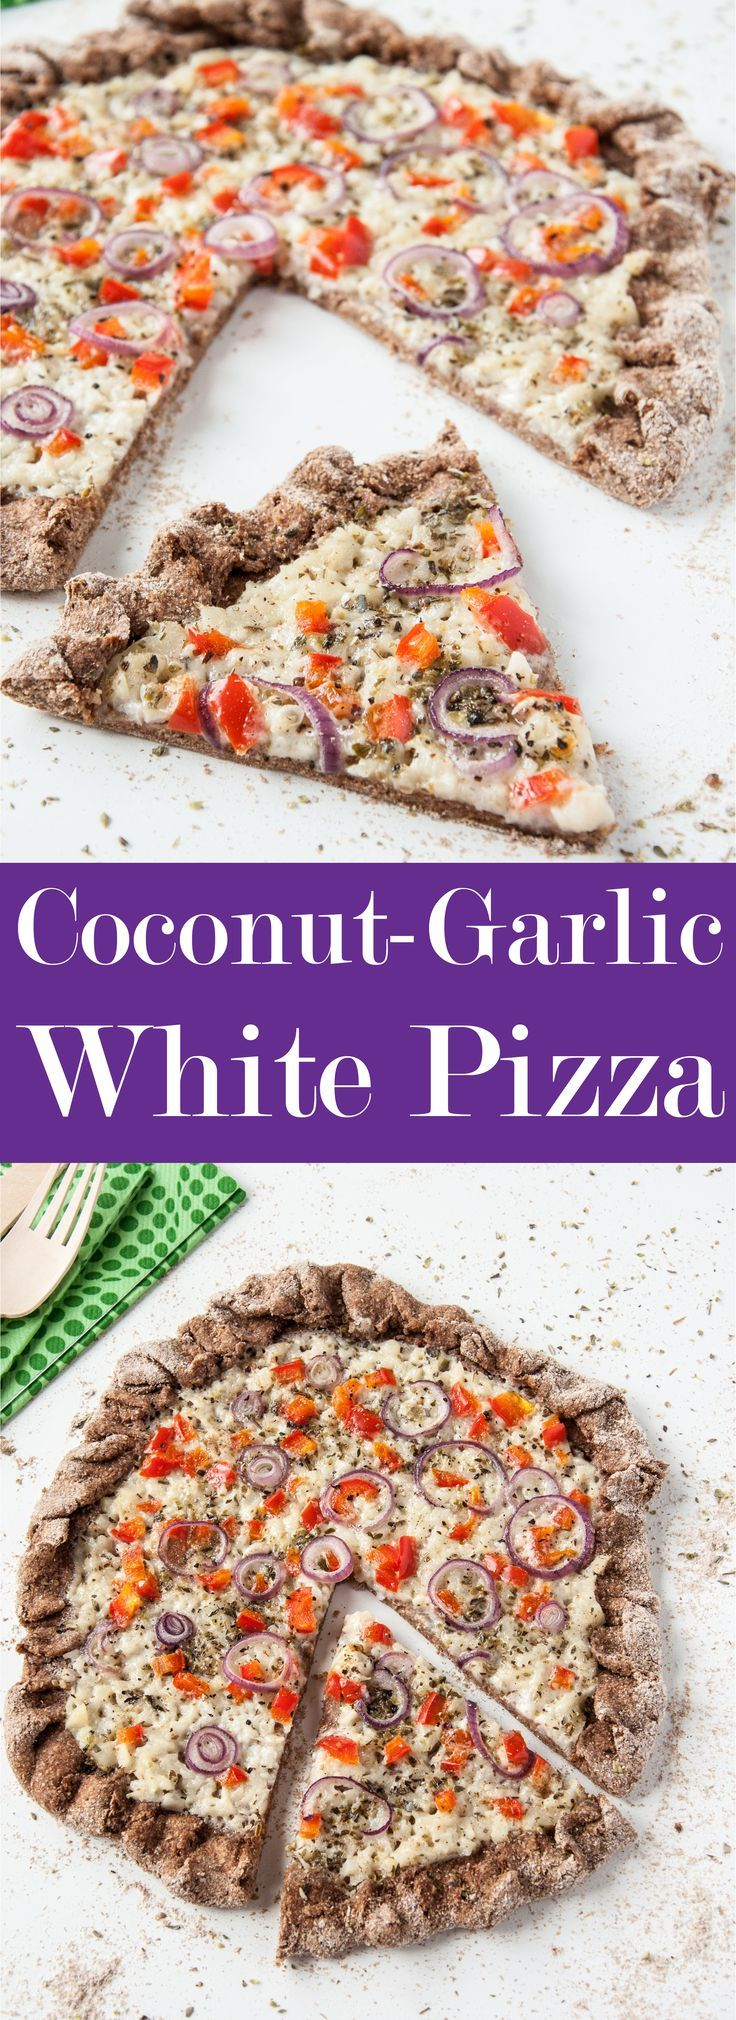 Coconut and Garlic White Pizza  Vegan Family Recipes CoconutGarlic White Pizza Recipe w Hearty Whole Wheat Crust